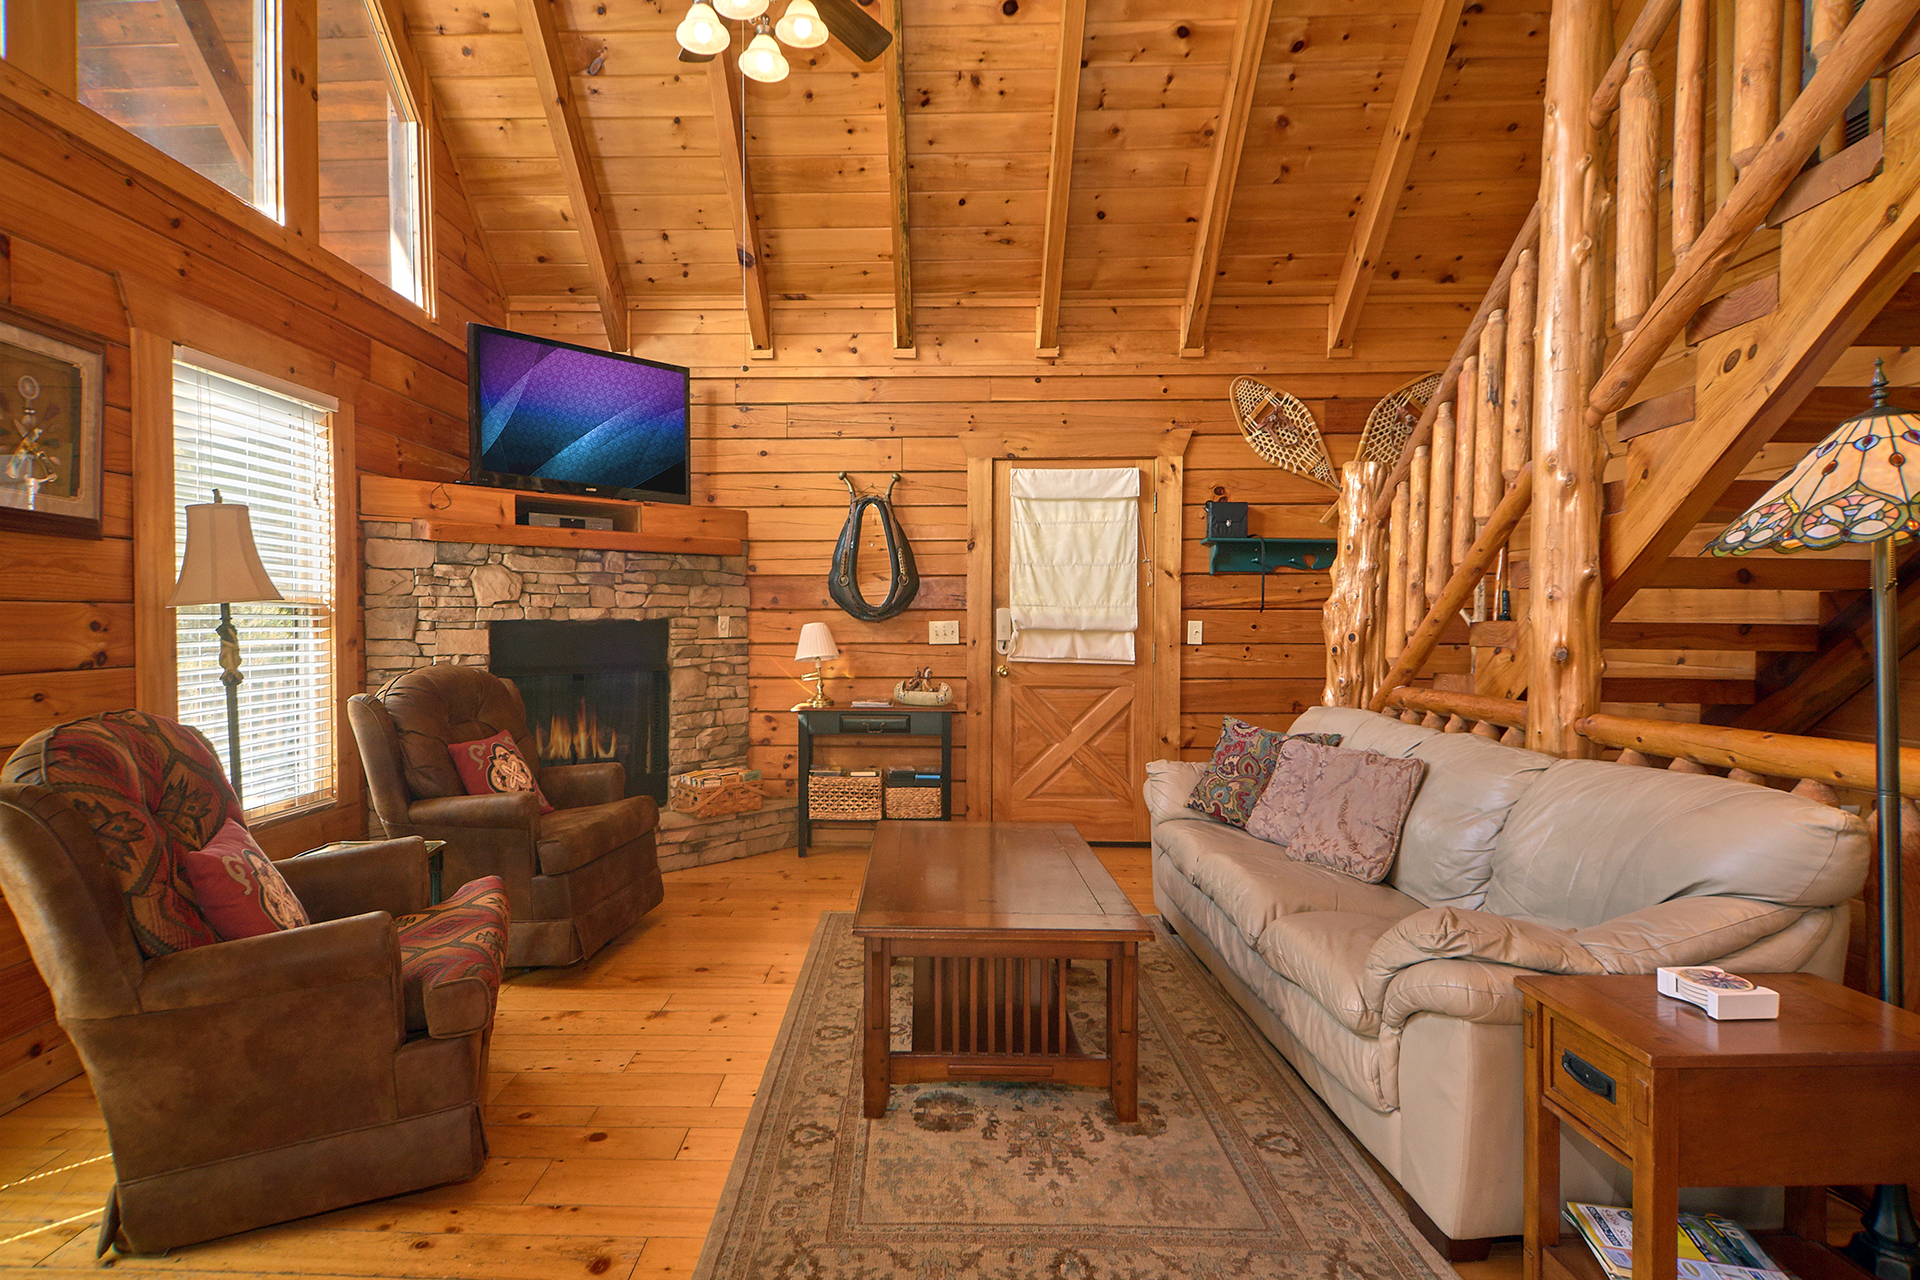 dock homeaay org homes for sale rent cabins lake with getconnectedforkids arrohead arrowhead